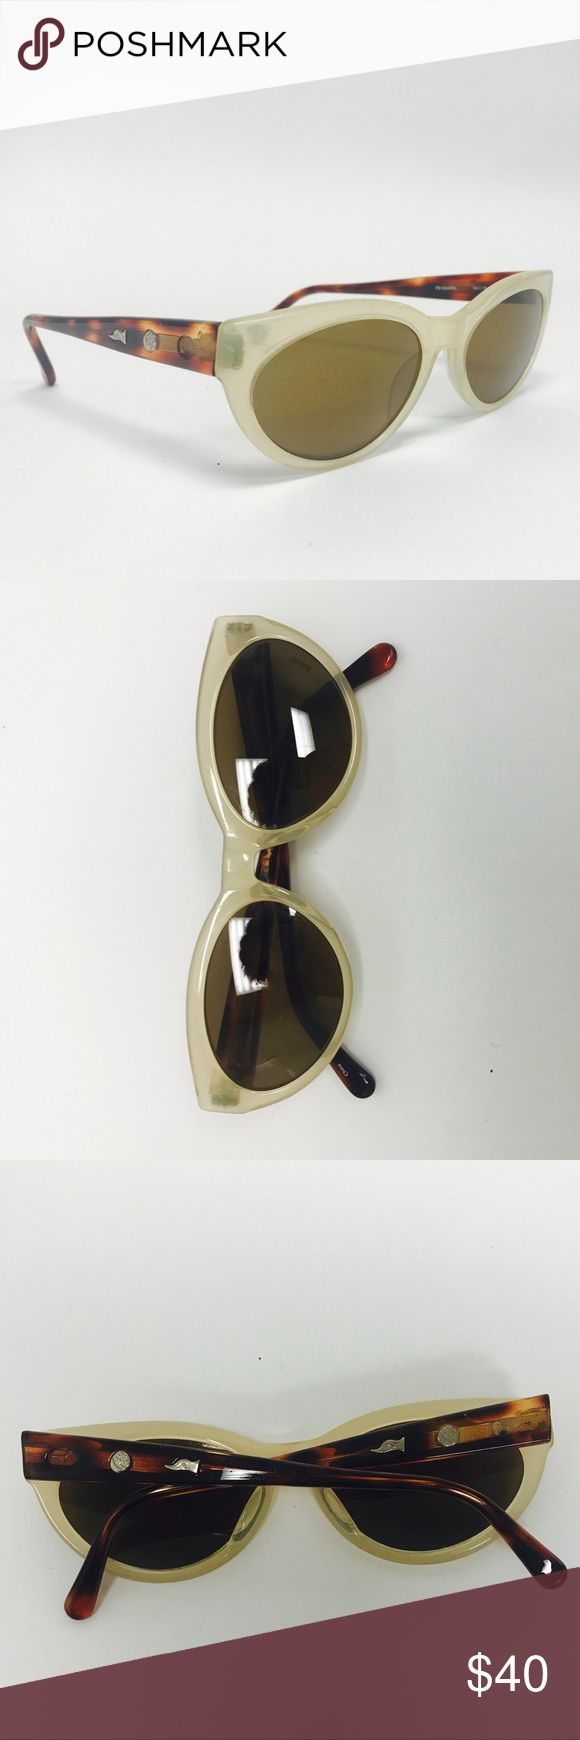 Fossil Polly Tortoise Cat Eye Sunglasses Good used condition. Minor scratches. Missing 2 little emblems. Fossil Accessories Sunglasses